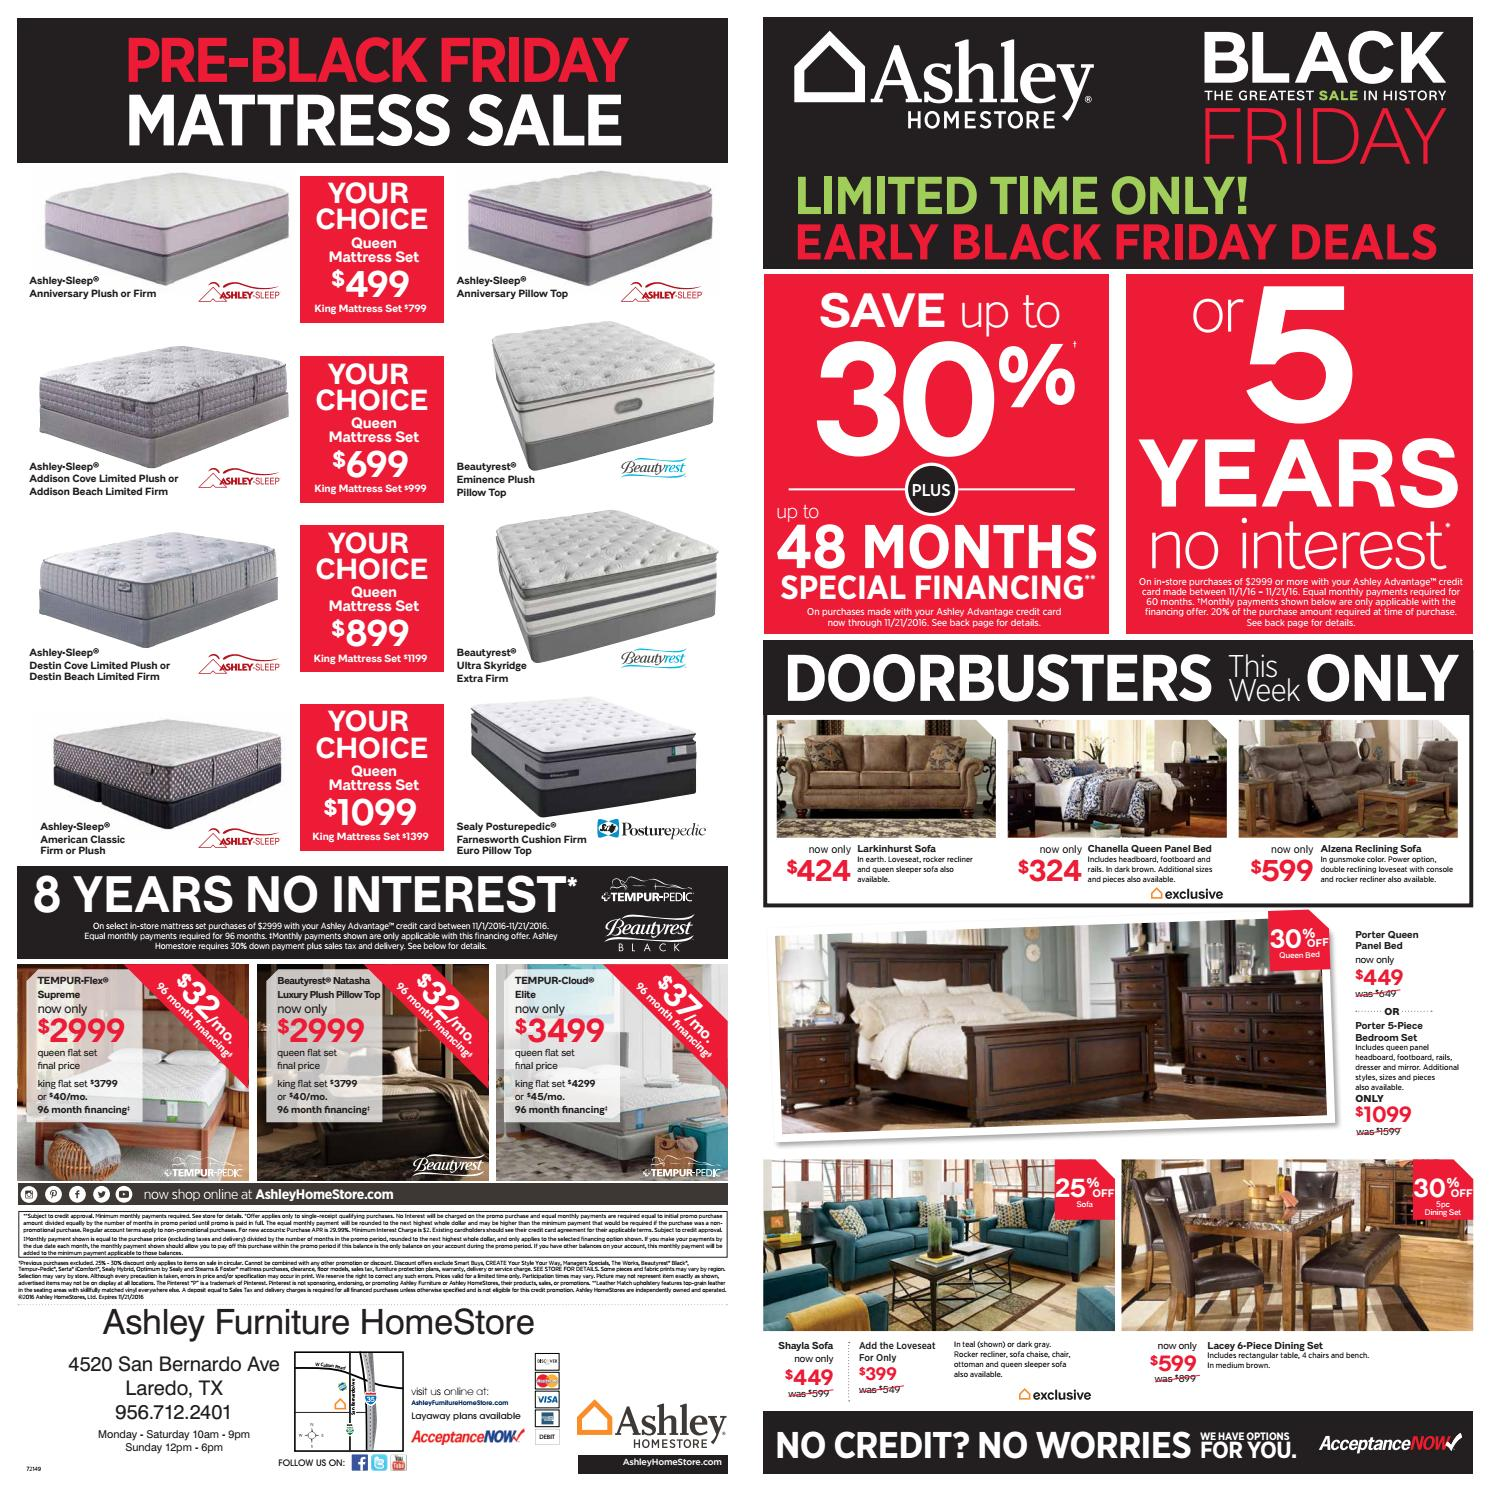 Ashley Furniture Black Friday Ads 2016: Pre-Black Friday Event By Ashley Furniture HomeStore Of